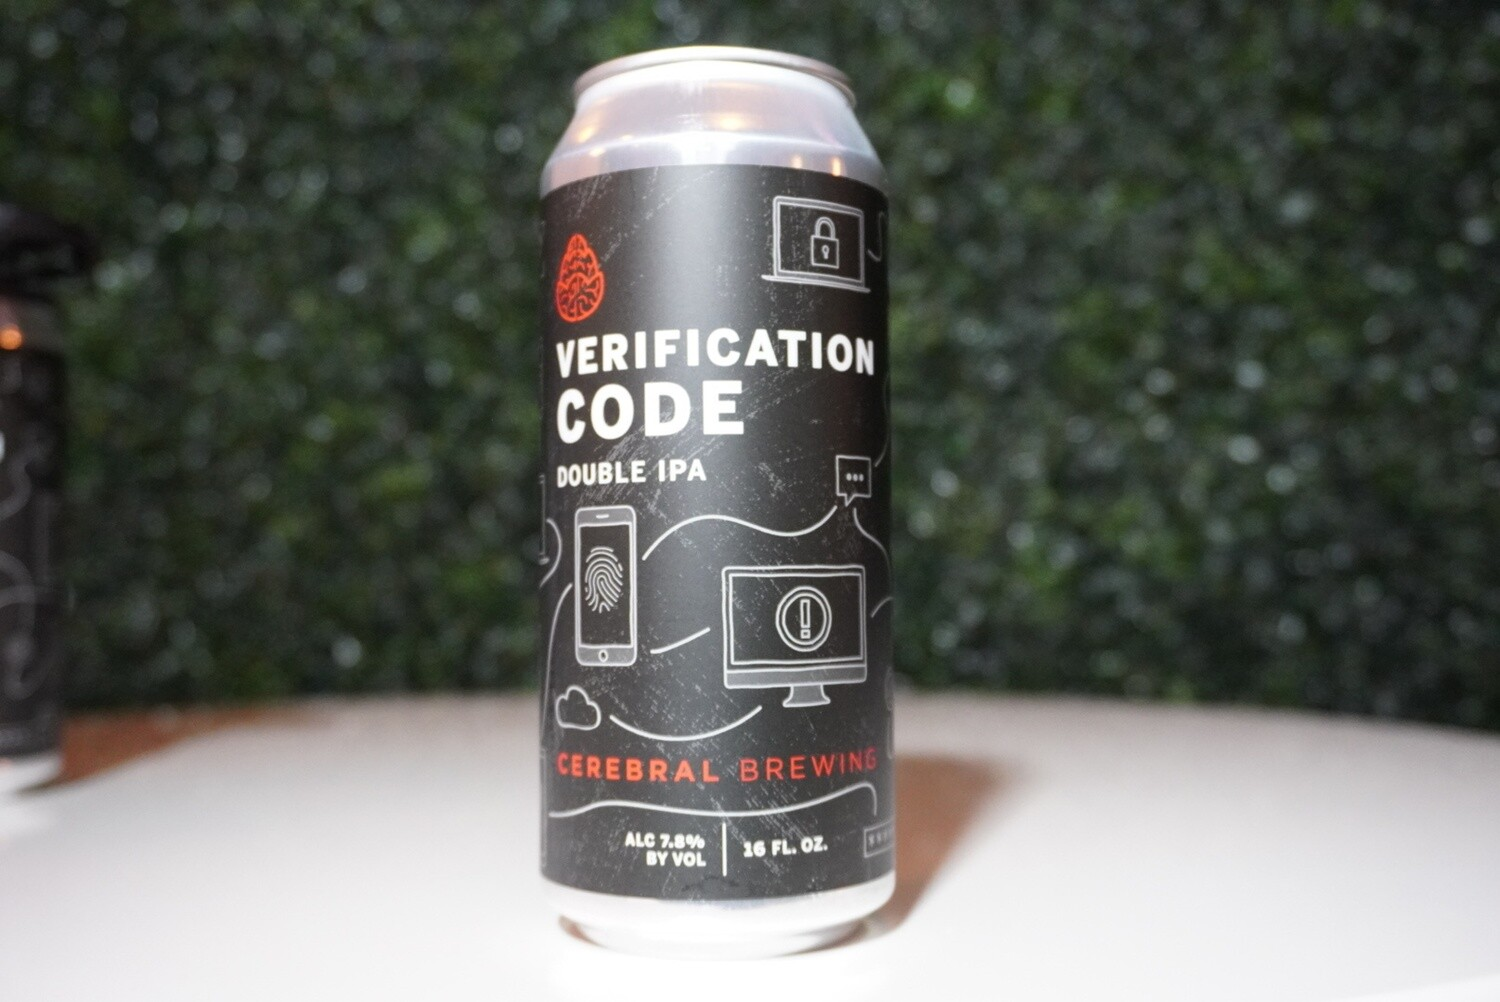 Cerebral - Verification Code - Double IPA - 7.8% ABV - 16oz can